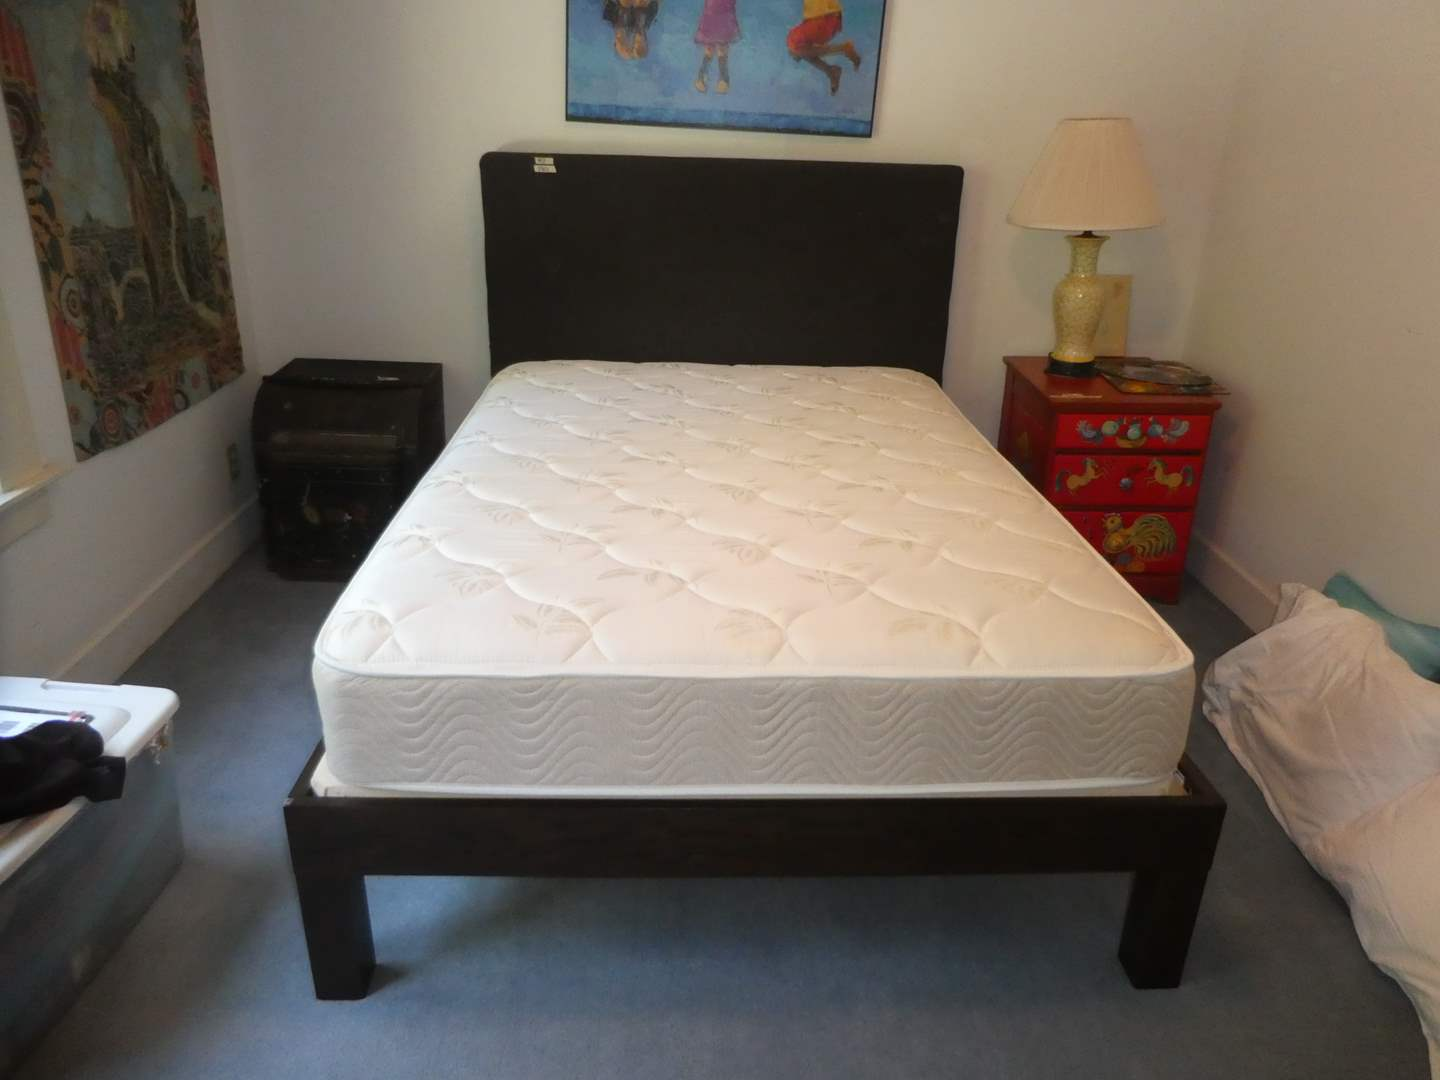 Lot # 5 - Nice Clean Mattress and Box Spring w/ Fame, Upholstered Headboard and Bedding(Located Upstairs Please Bring Help)